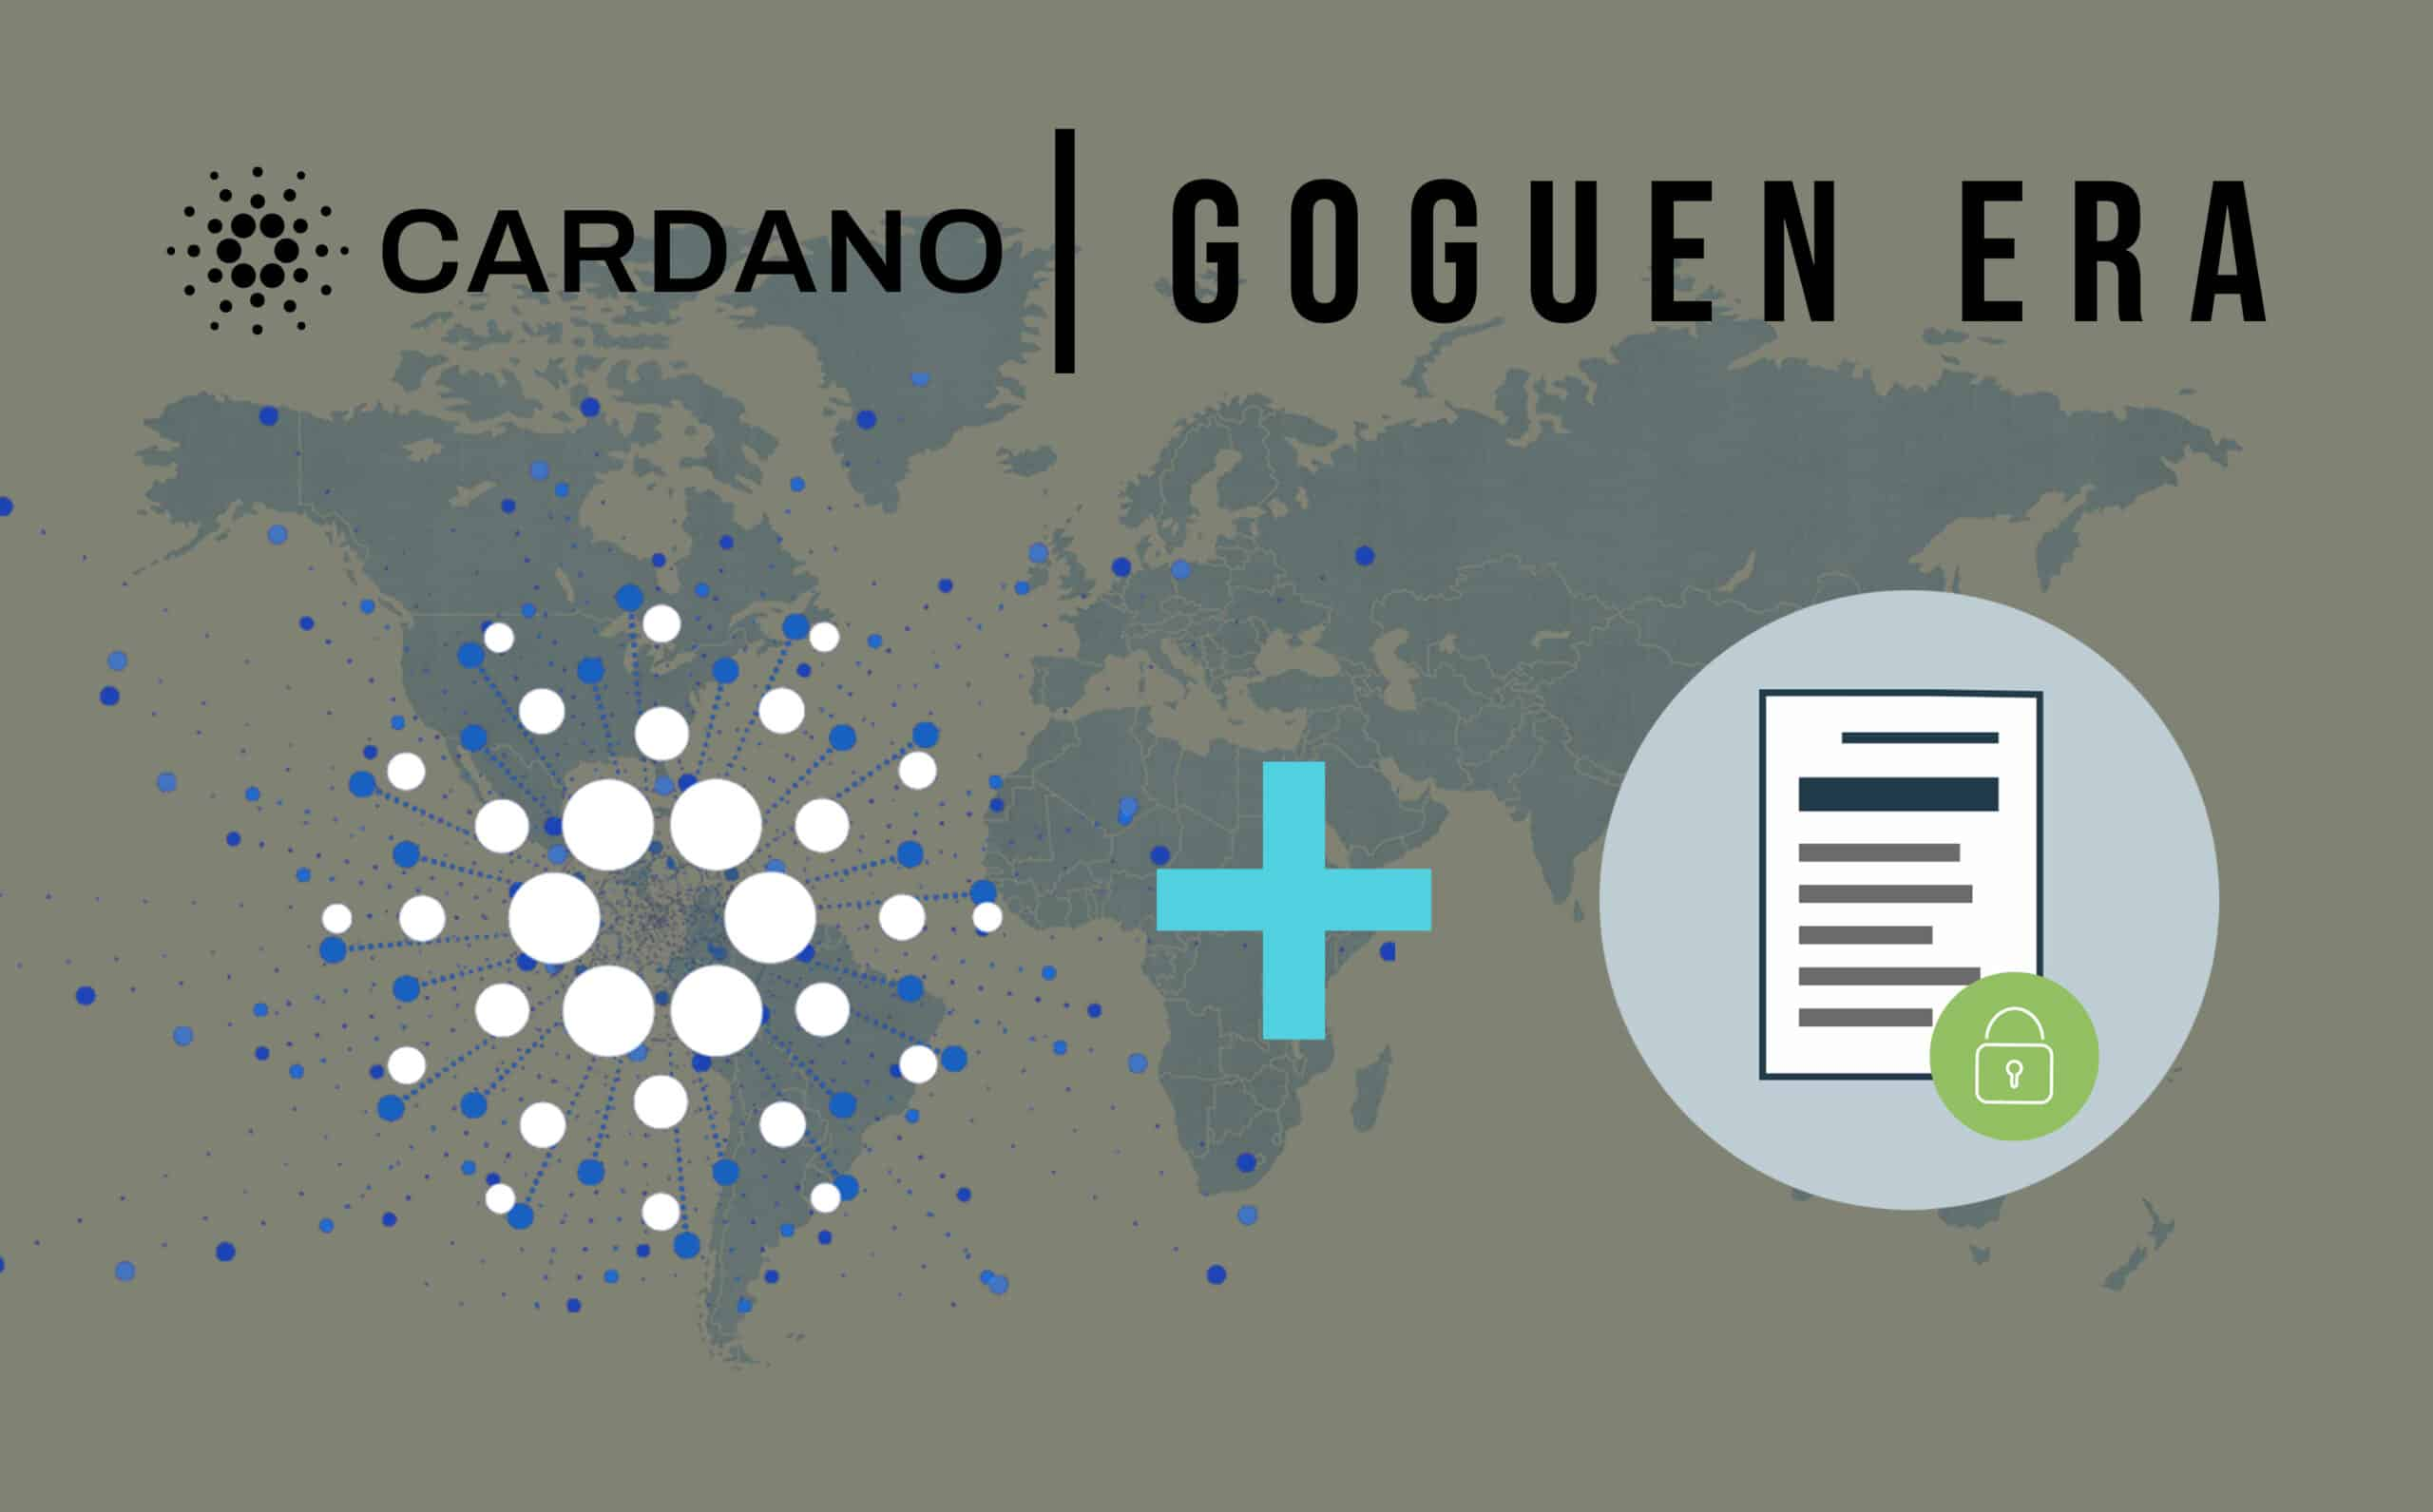 3rd Phase of Cardano is on The Horizon – The Smart Contracts Era.